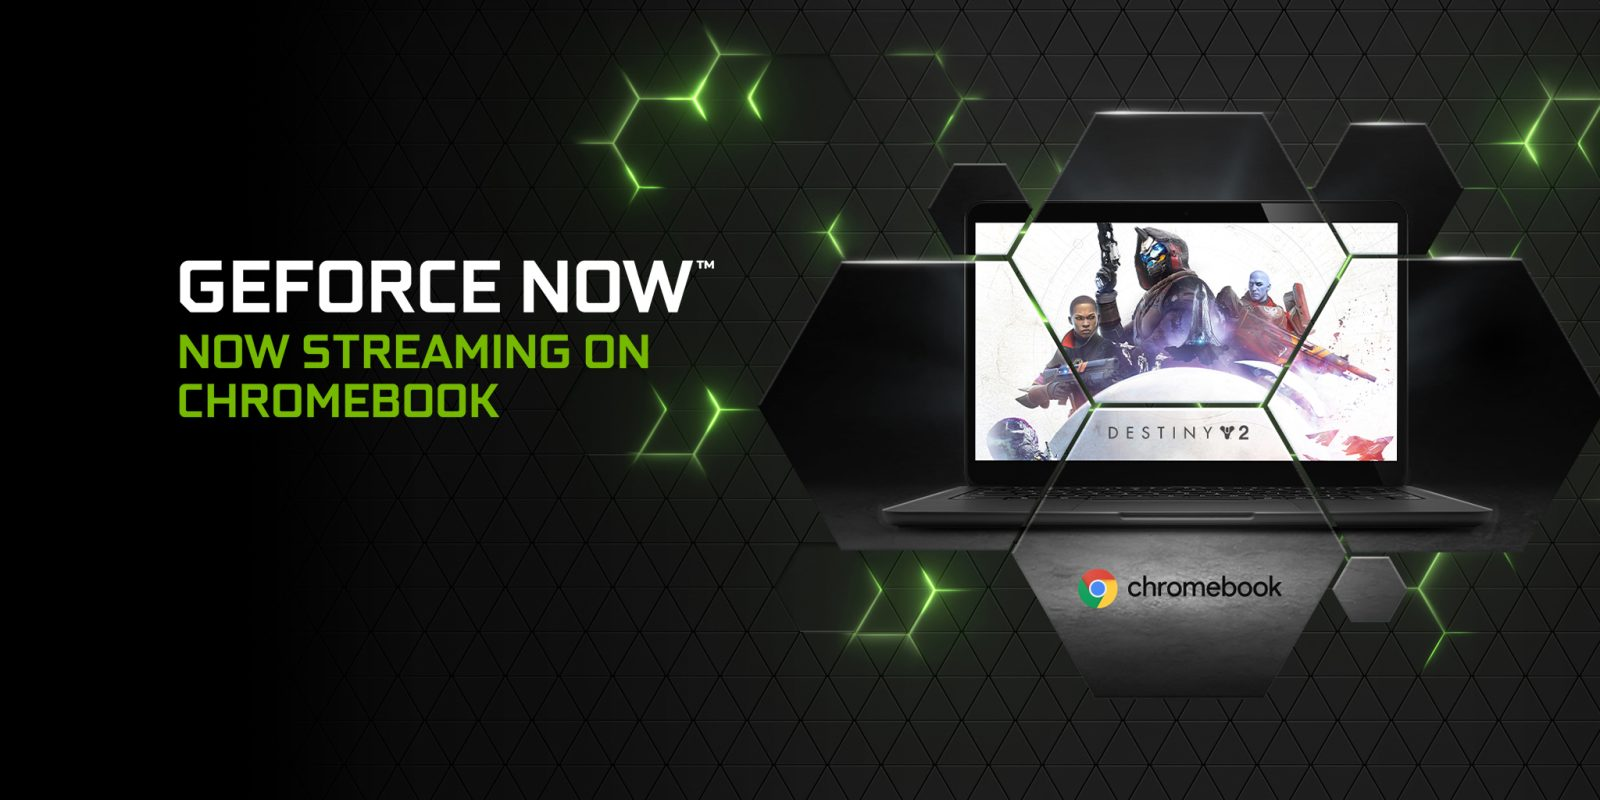 Chromebook owners can now redeem 3 free months of Nvidia GeForce Now